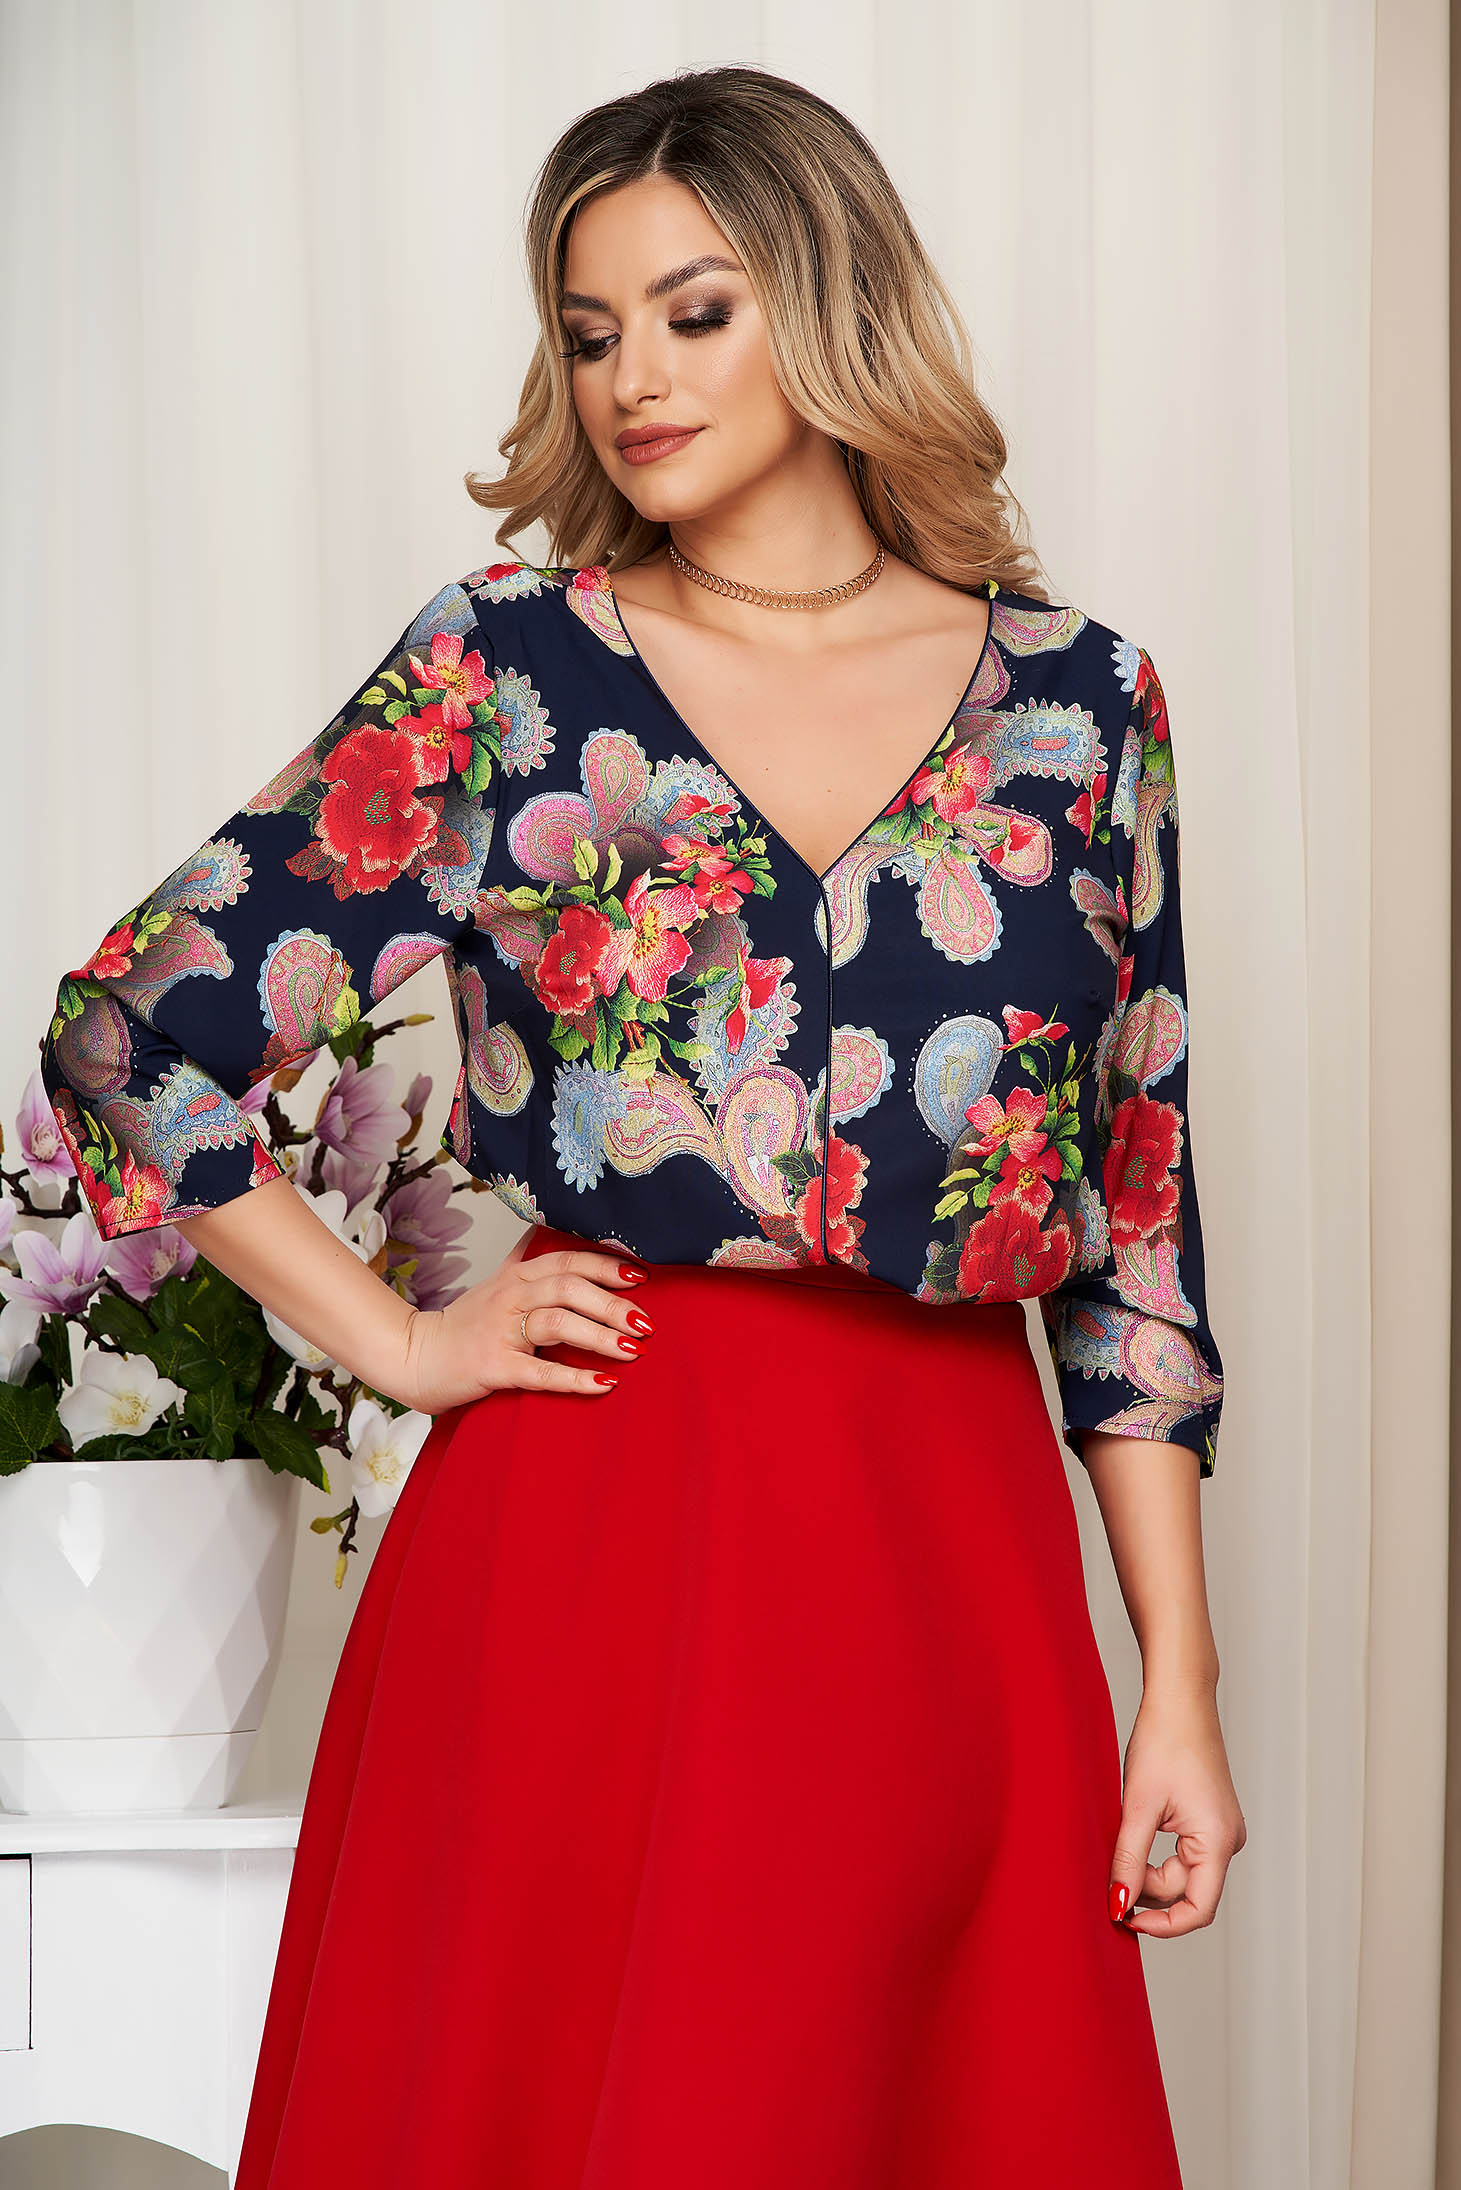 Women`s blouse red with floral print v back neckline thin fabric